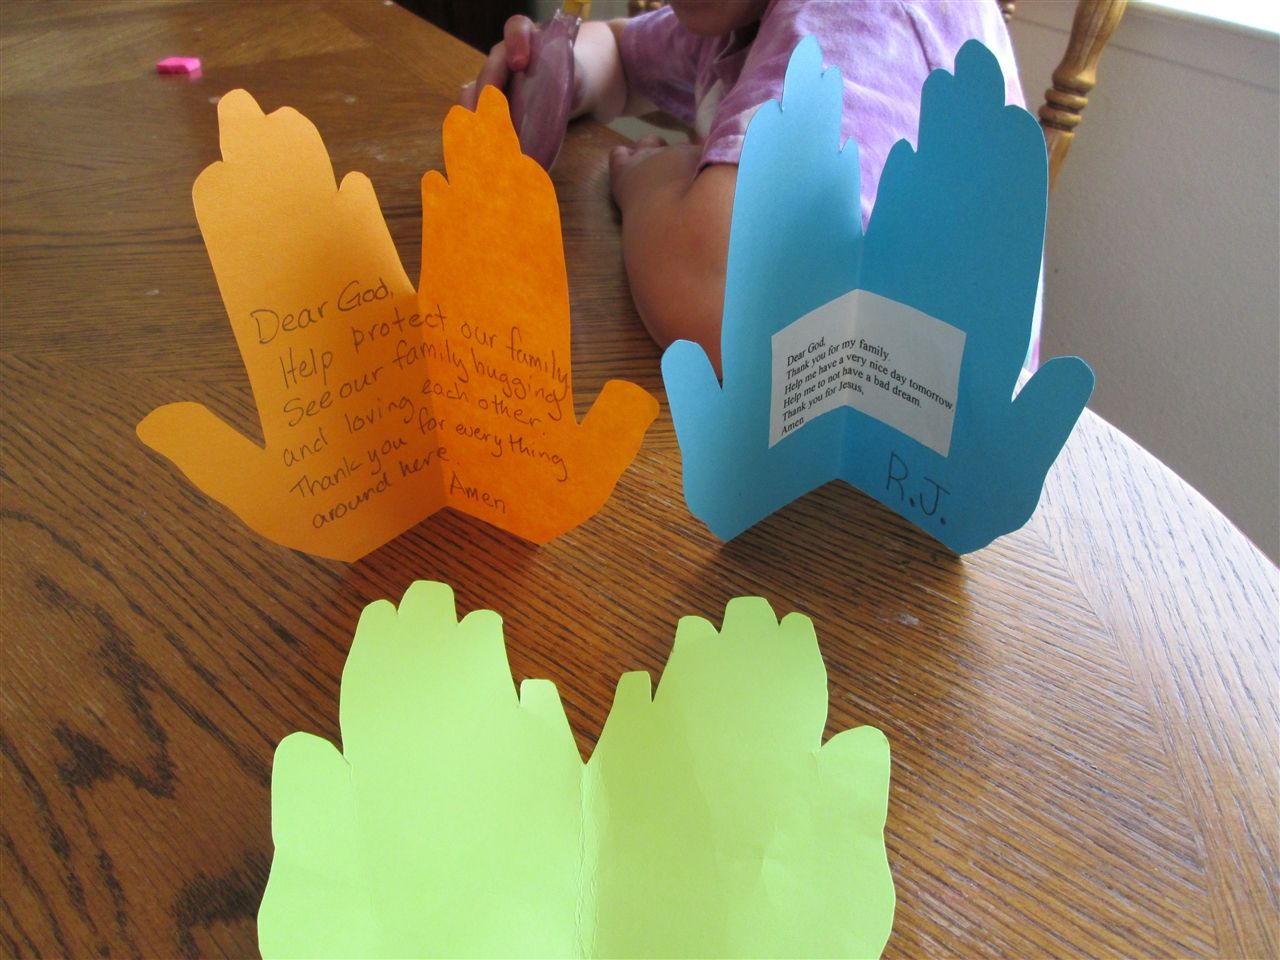 Going out to snag art supplies might be out of the question as we social distance, but there are plenty of simple, fun crafts kids can do during quarantine that require materials you already have on hand. Praying Hands Craft Google Search Dia Da Crianca Criancas Escola Sabatina